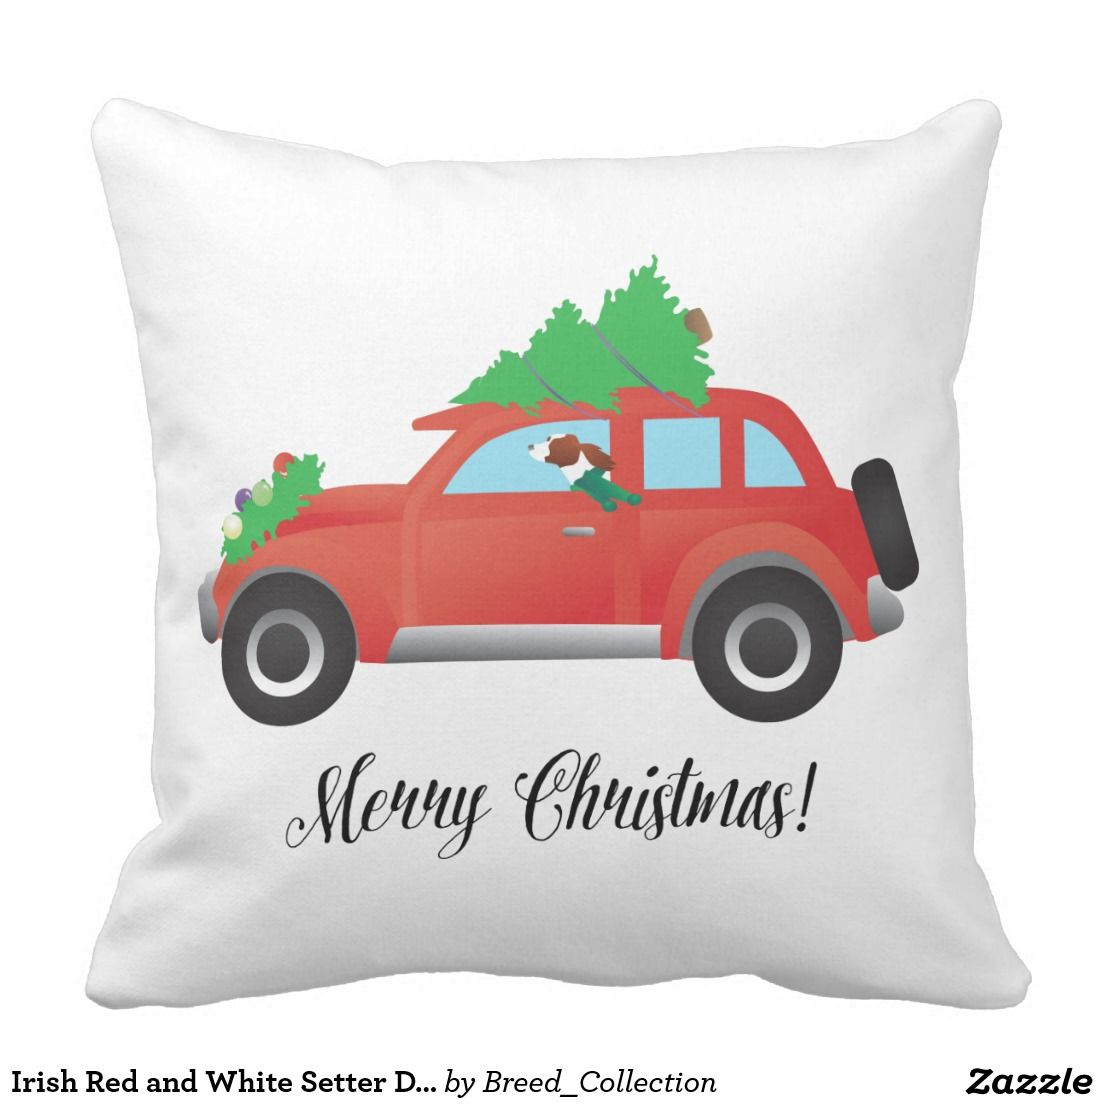 Irish Red and White Setter Driving Christmas Car Throw Pillows ...